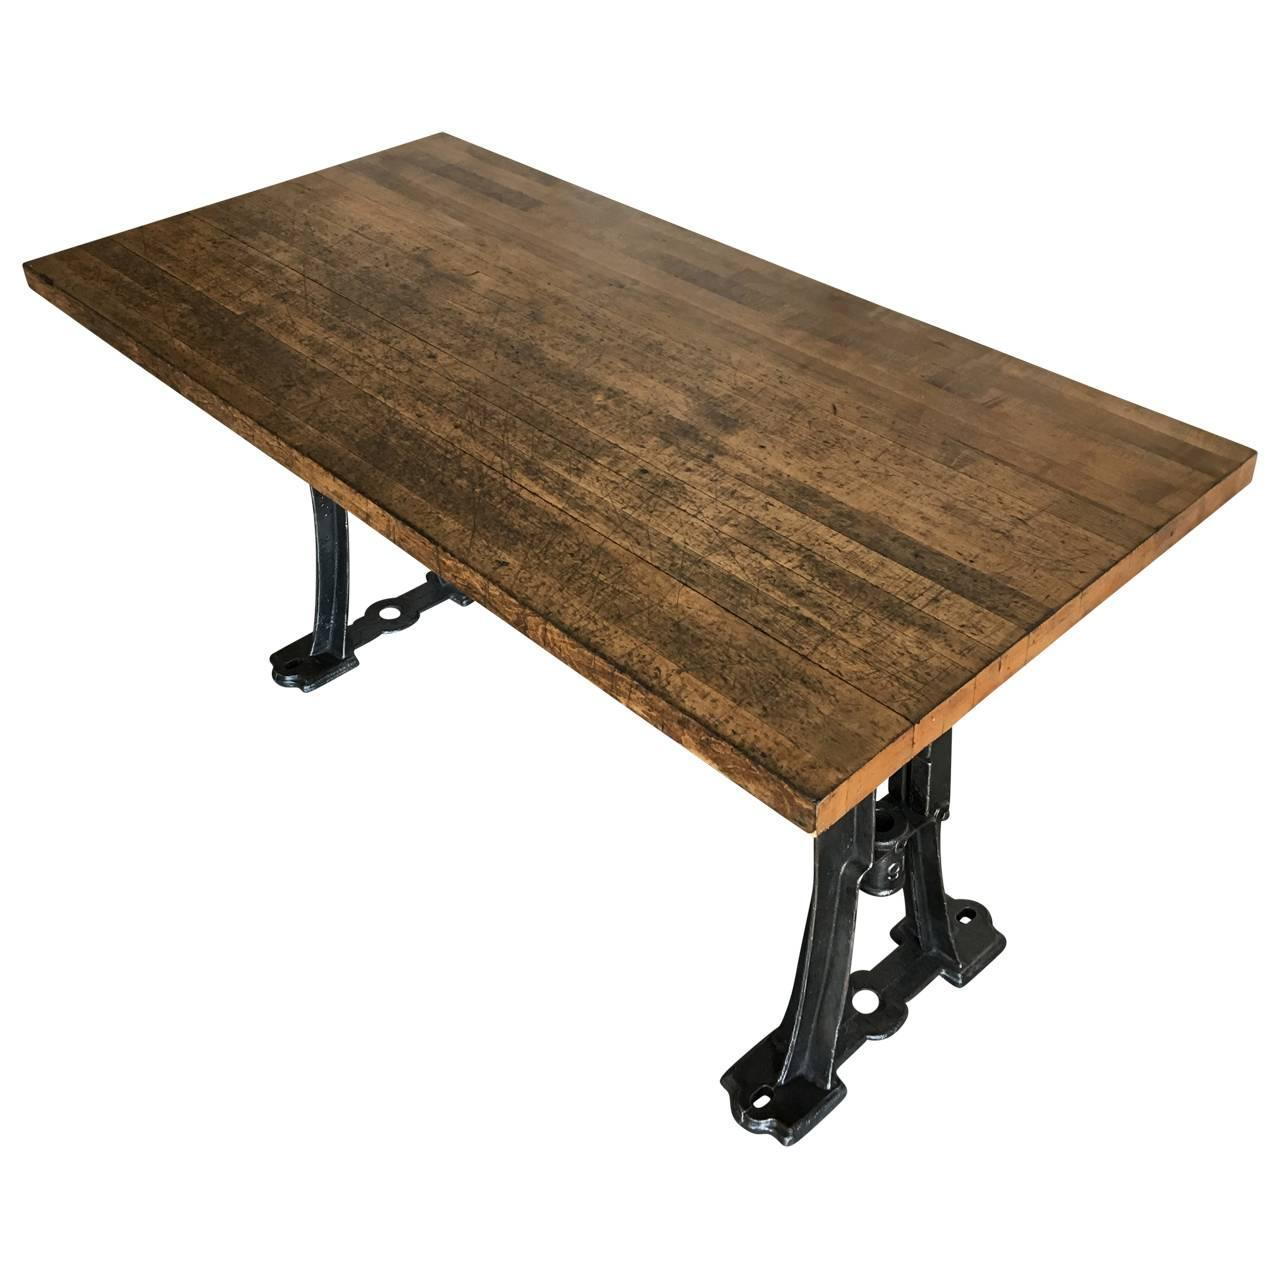 Industrial Cast Iron Base Dining Room Table For Sale at ...